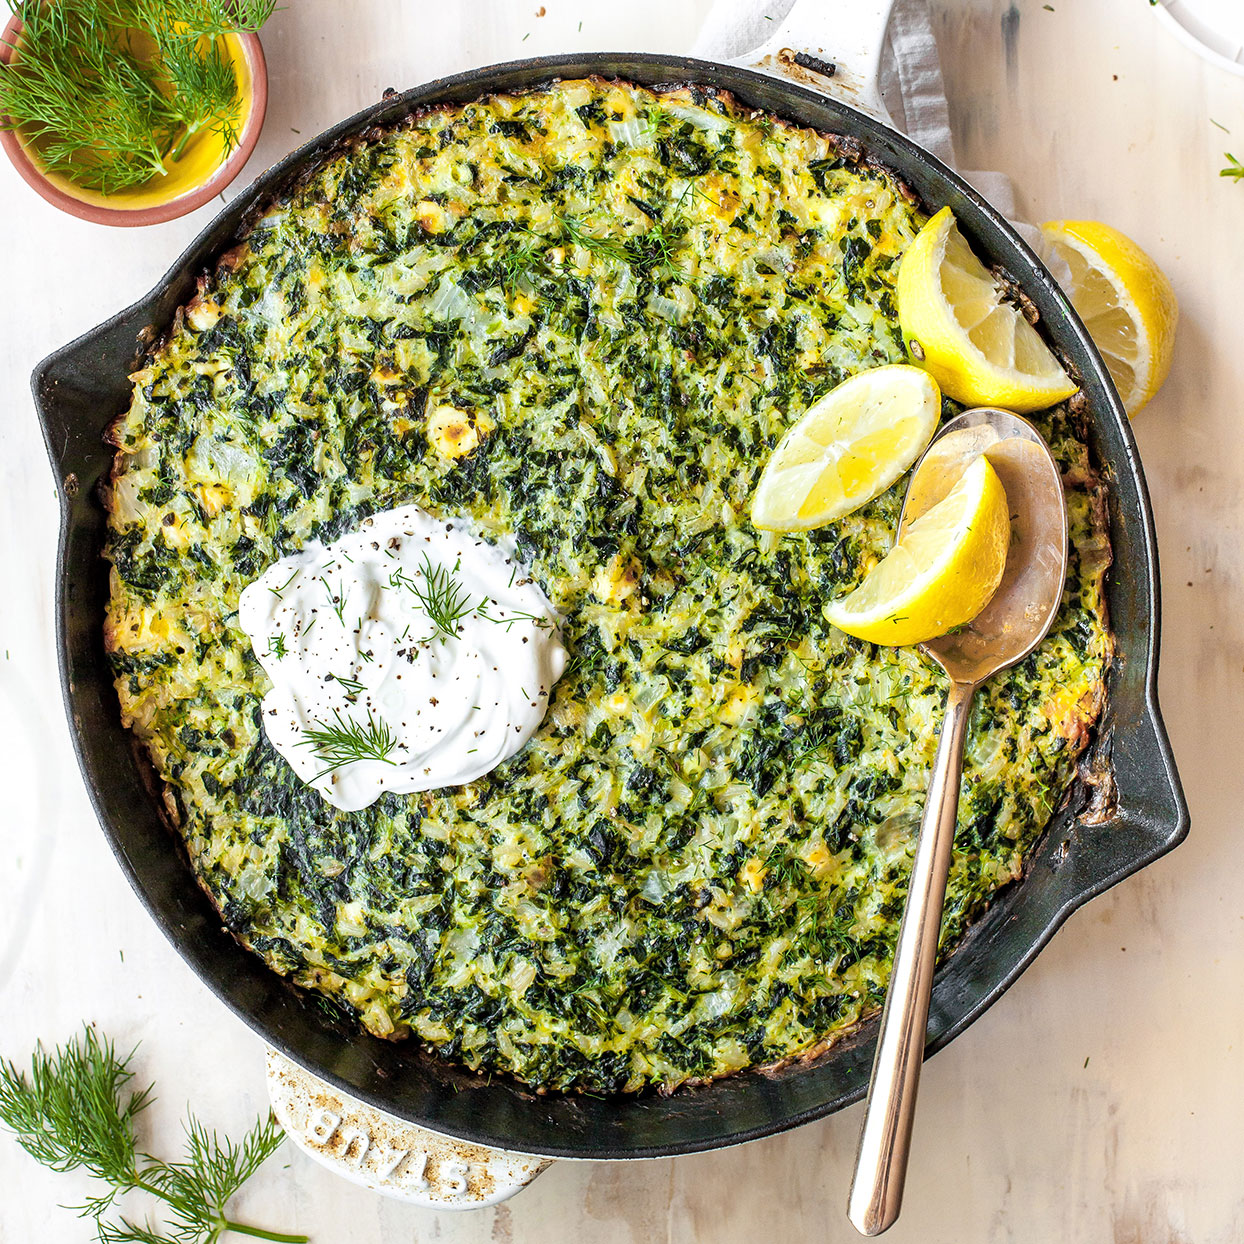 This one-pan recipe is the casserole version of spanakopita! It's hearty enough to enjoy as a vegetarian lunch or dinner, yet versatile enough to serve alongside just about any protein. To make it extra creamy, top each serving with a dollop of sour cream.Source: EatingWell.com, July 2020